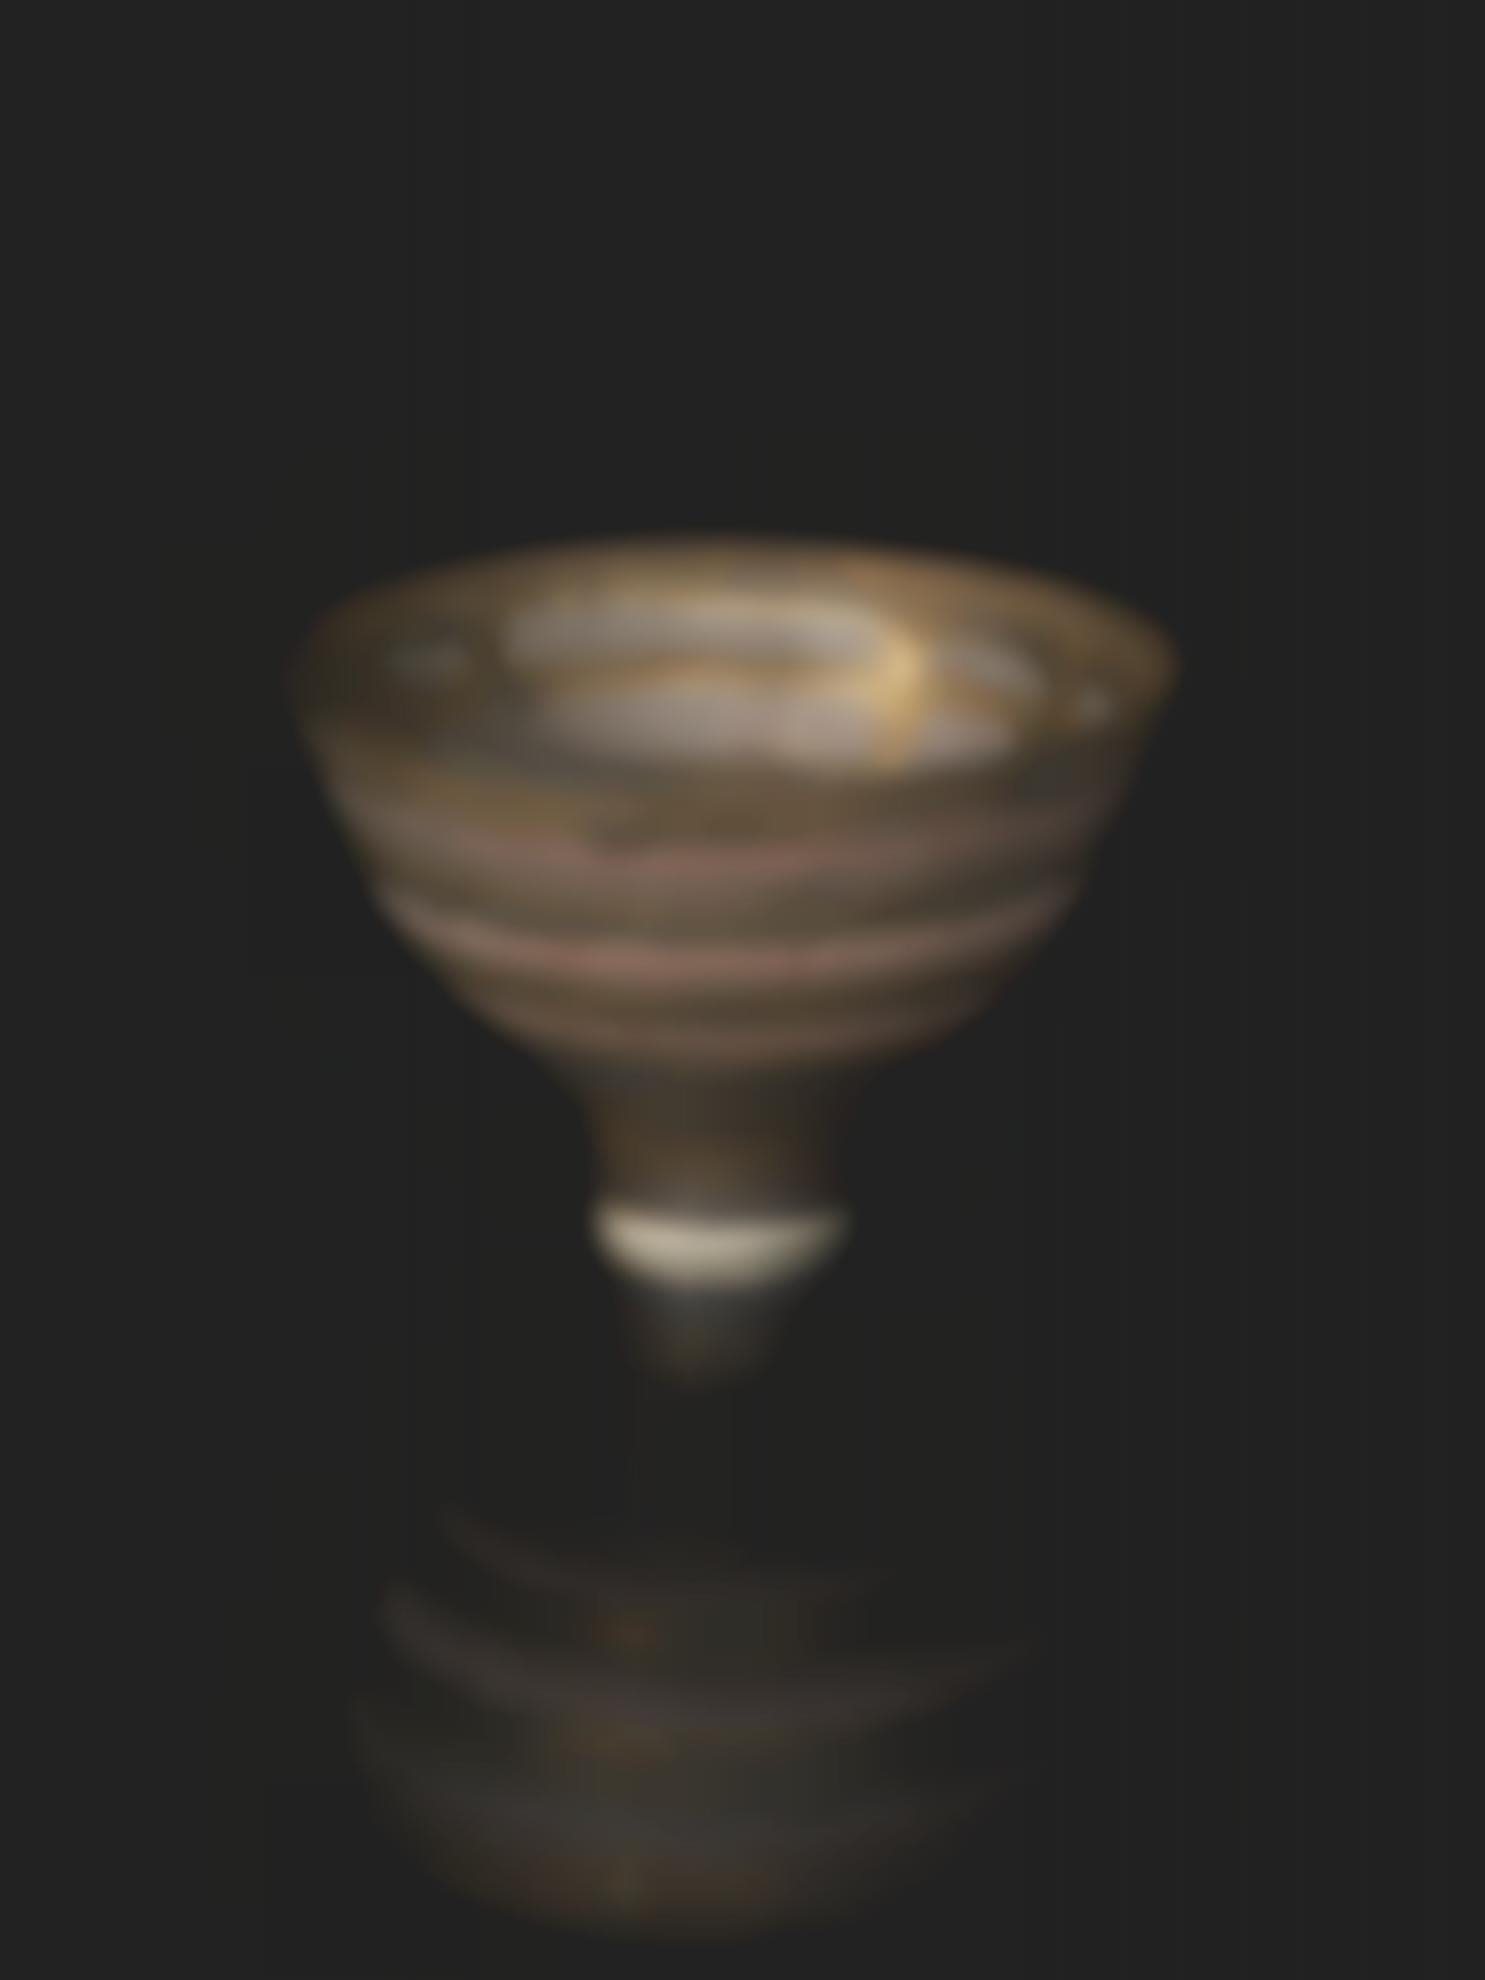 Dame Lucie Rie - Footed Bowl-1980